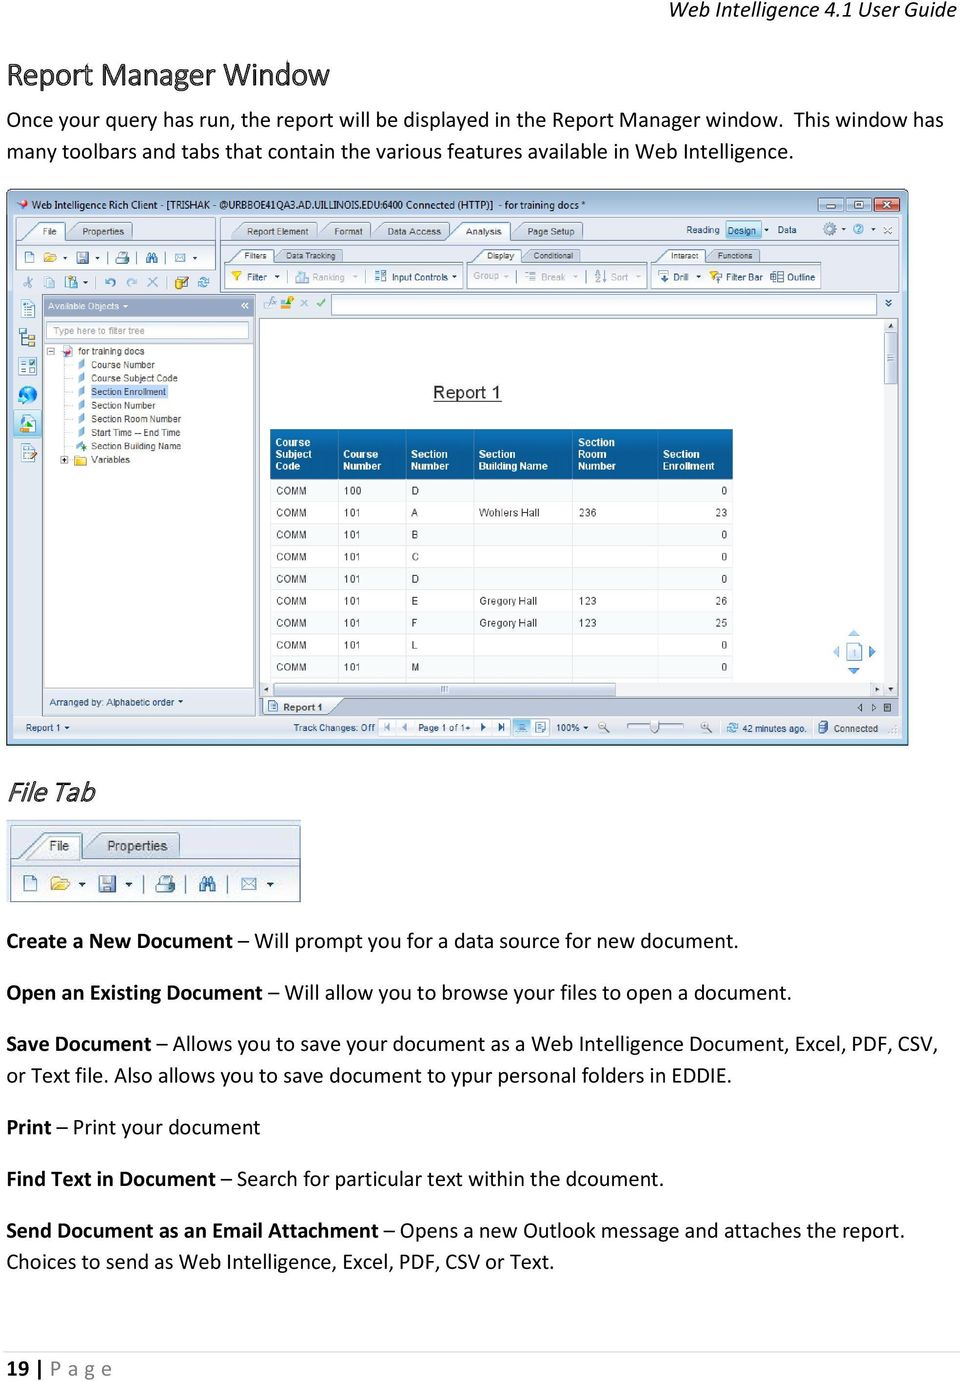 Open an Existing Document Will allow you to browse your files to open a document. Save Document Allows you to save your document as a Web Intelligence Document, Excel, PDF, CSV, or Text file.